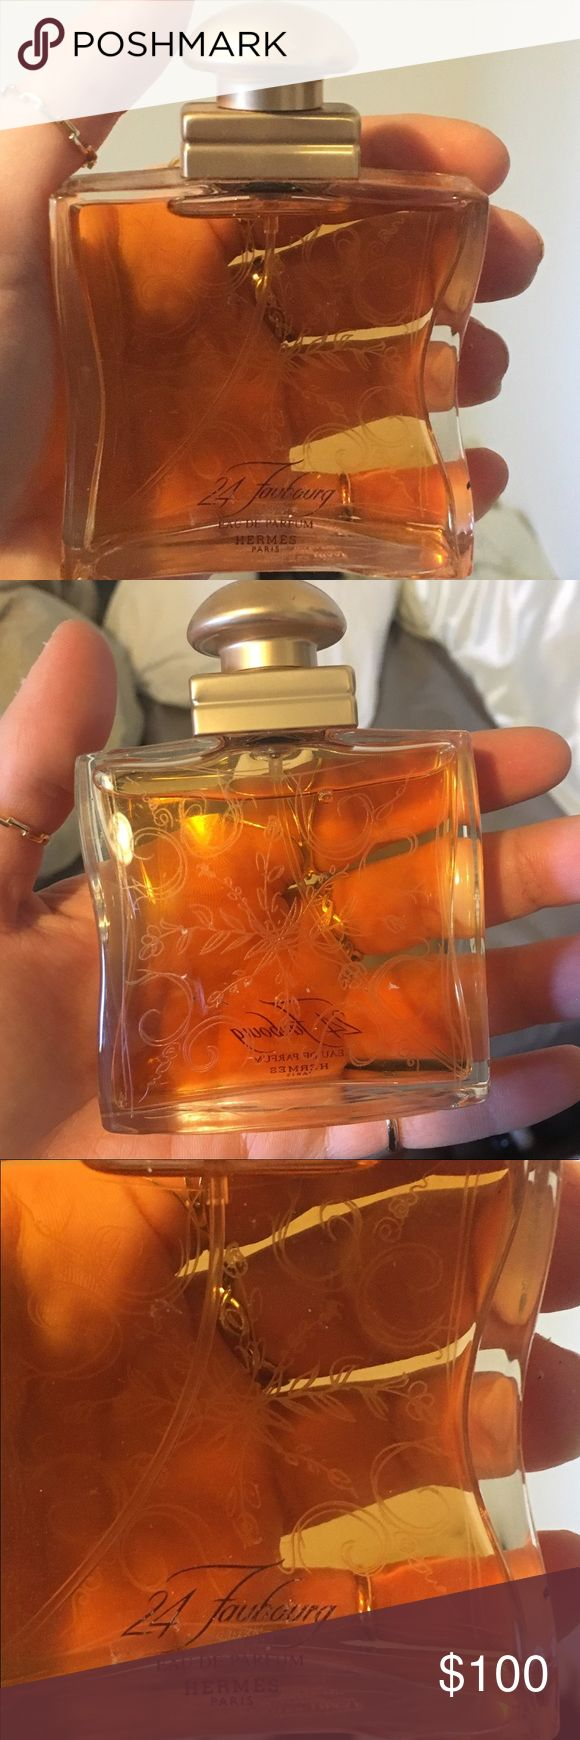 24 Faubourg Eau De Parfum Perfume by Hermes 1.6 OZ This perfume was gifted to me. It's completely full and maybe just sprayed once or twice so if this is your signature scent, here's an incredible deal 😝 Hermes Other